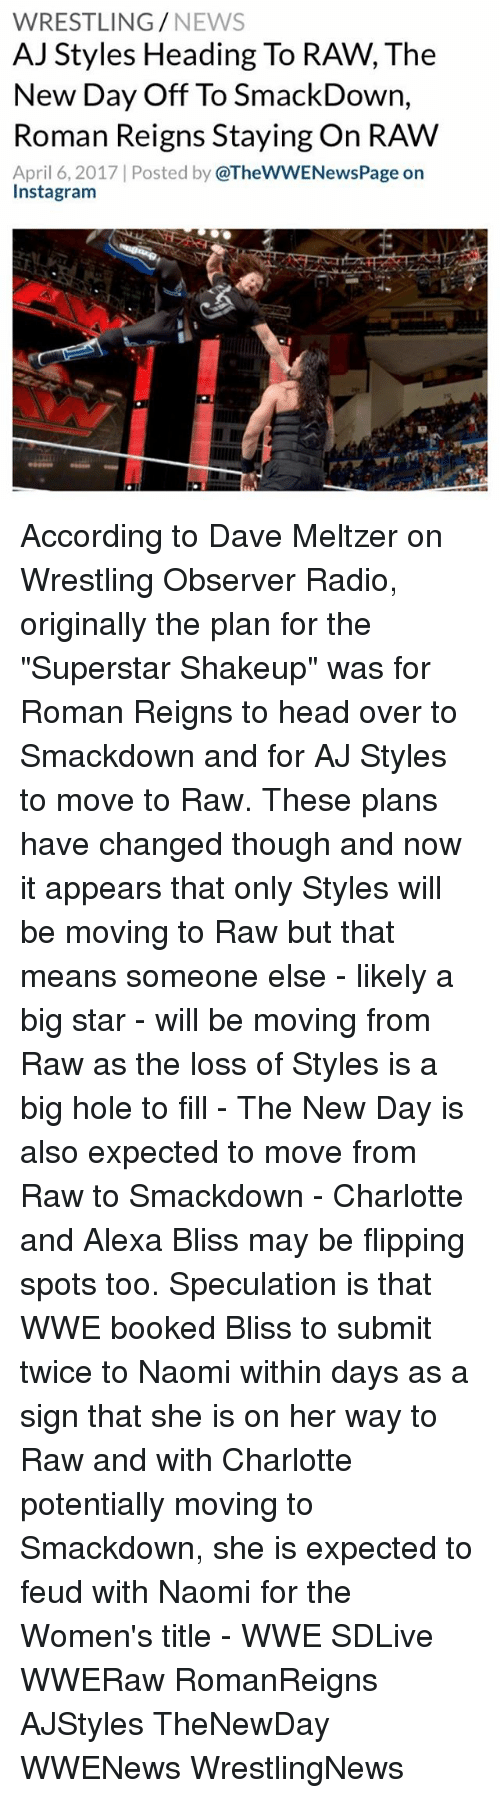 """Roman Reigns: WRESTLING  NEWS  AJ Styles Heading To RAW, The  New Day Off To SmackDown,  Roman Reigns Staying On RAW  April 6, 2017 Posted by  @TheWWENewsPage on  Instagram According to Dave Meltzer on Wrestling Observer Radio, originally the plan for the """"Superstar Shakeup"""" was for Roman Reigns to head over to Smackdown and for AJ Styles to move to Raw. These plans have changed though and now it appears that only Styles will be moving to Raw but that means someone else - likely a big star - will be moving from Raw as the loss of Styles is a big hole to fill - The New Day is also expected to move from Raw to Smackdown - Charlotte and Alexa Bliss may be flipping spots too. Speculation is that WWE booked Bliss to submit twice to Naomi within days as a sign that she is on her way to Raw and with Charlotte potentially moving to Smackdown, she is expected to feud with Naomi for the Women's title - WWE SDLive WWERaw RomanReigns AJStyles TheNewDay WWENews WrestlingNews"""